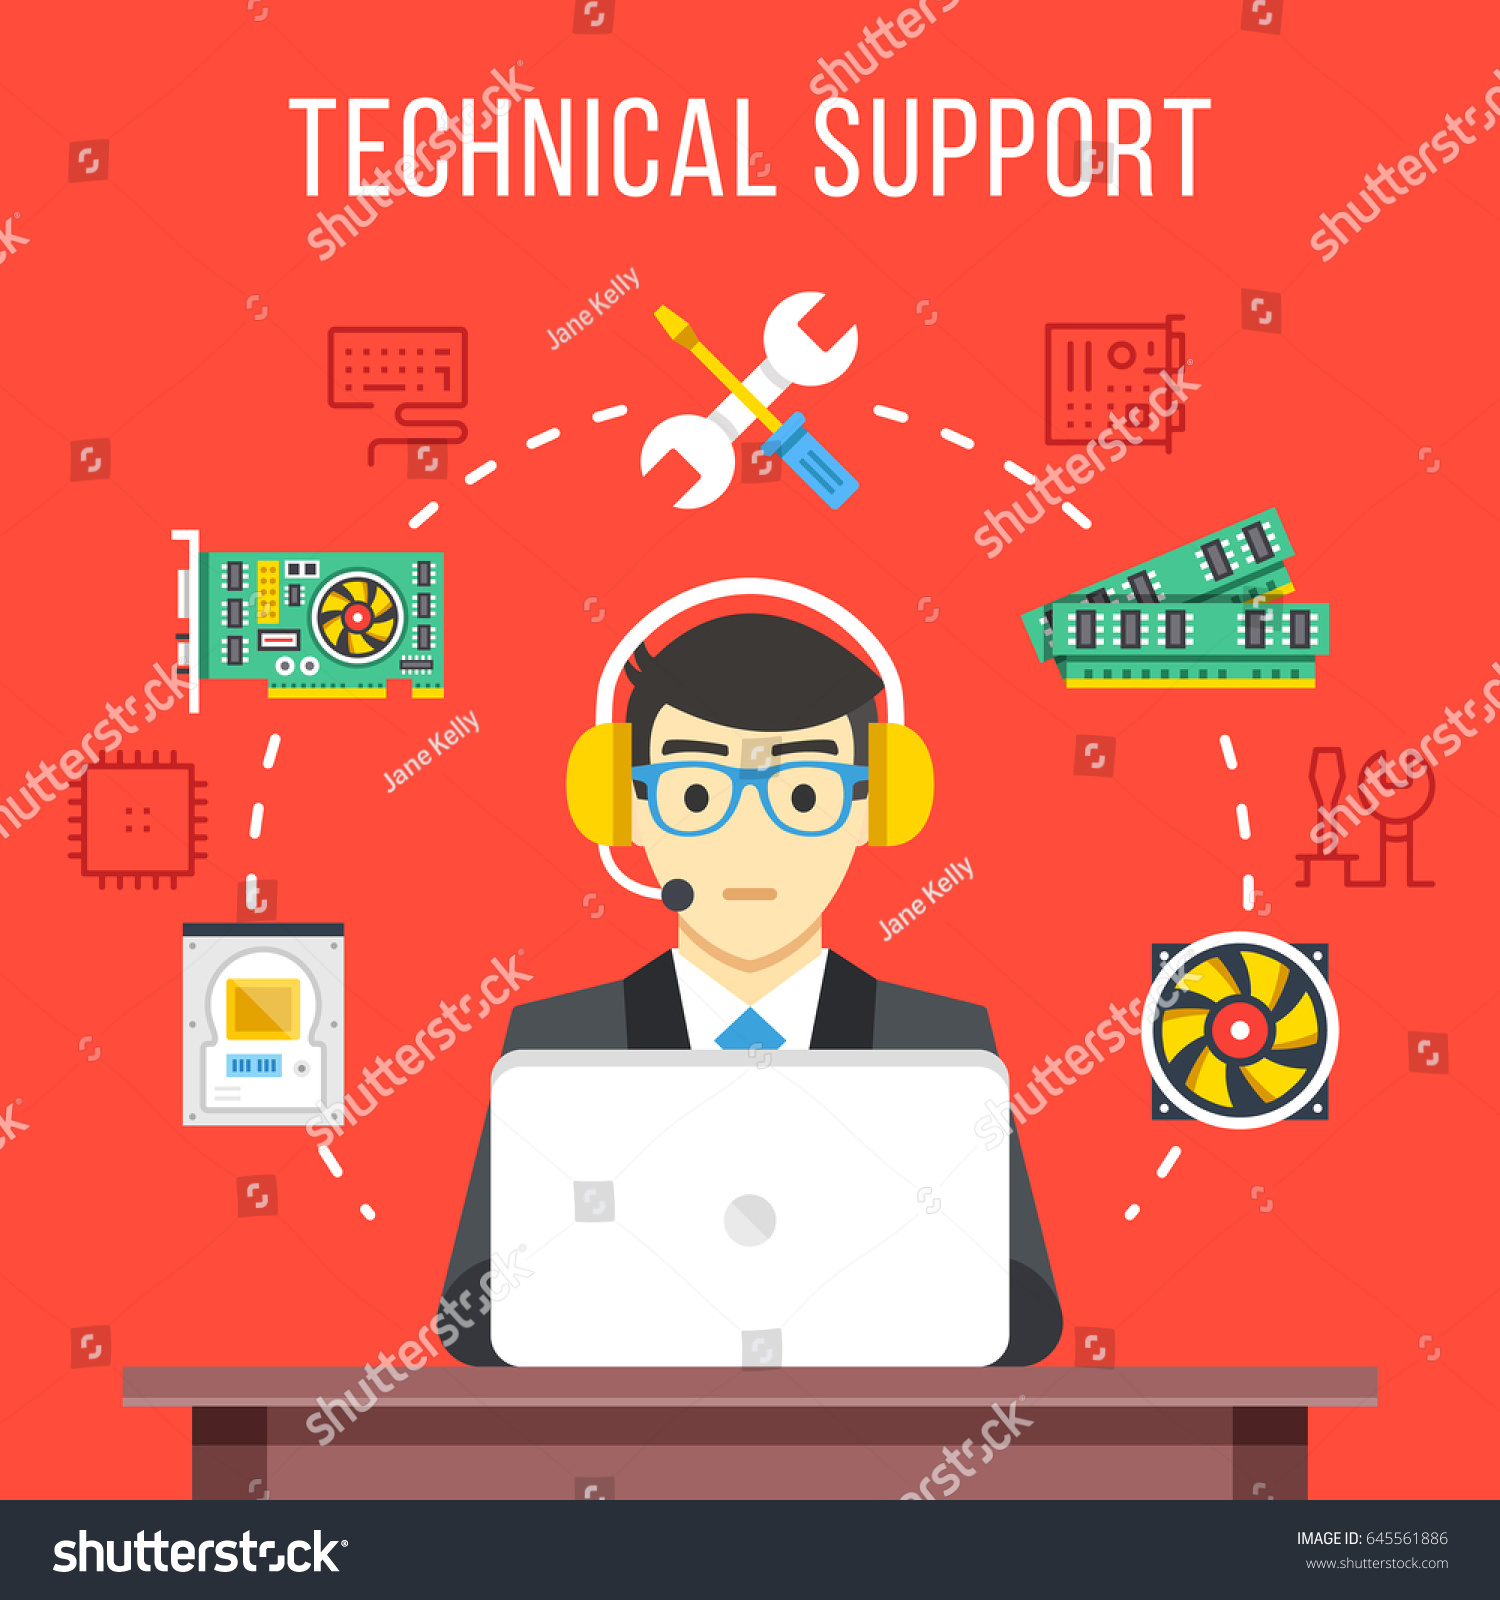 Technical support technical support engineer headset stock vector technical support technical support engineer with headset at computer at work flat icons sciox Image collections